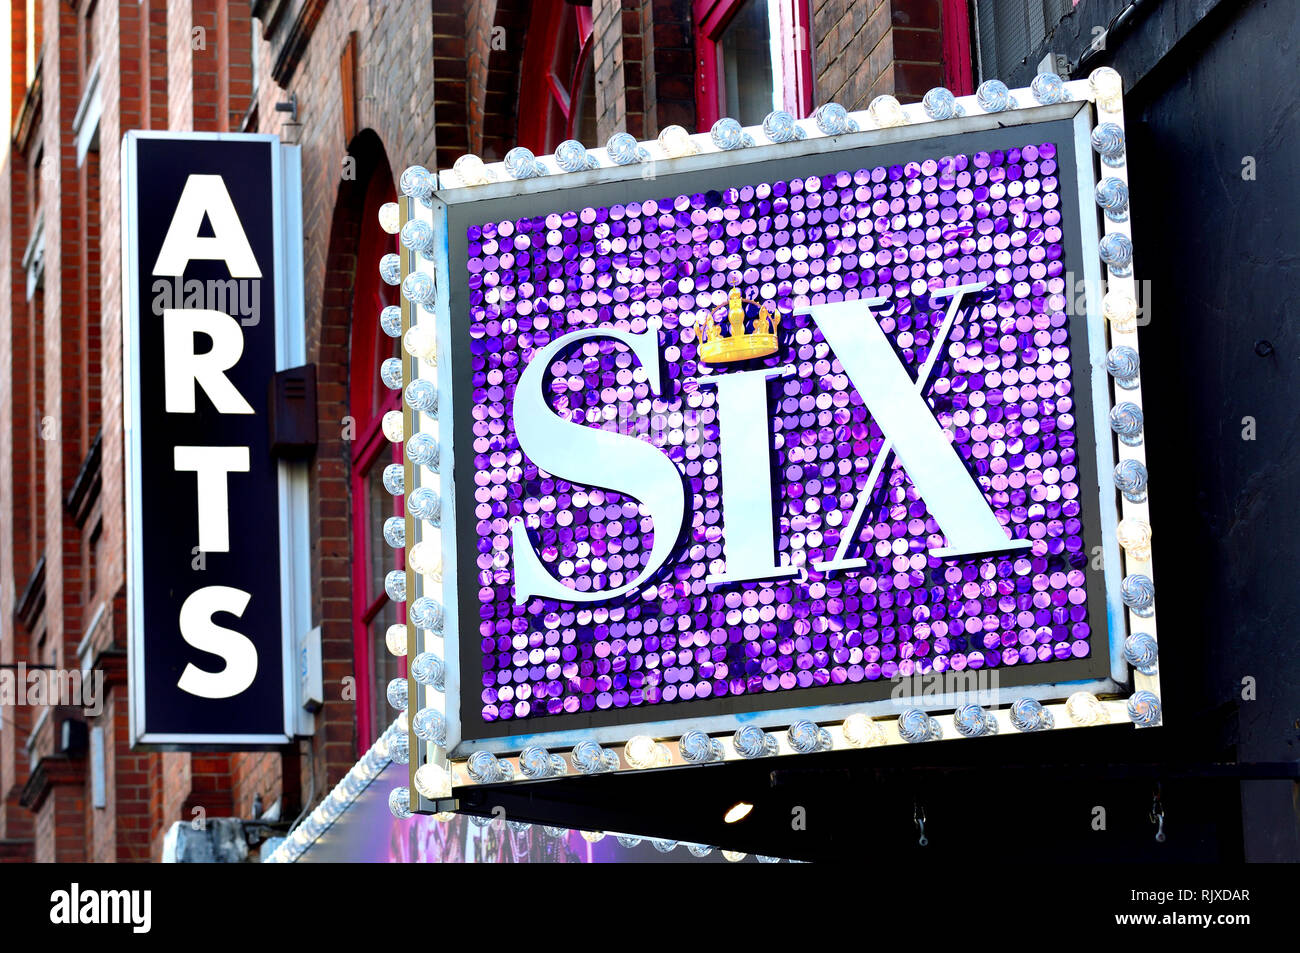 London, England, UK. Six, the Musical at the Arts Theatre, Covent Garden (Feb 2019) Comedy musical based on the six wives of Henry VIII - Stock Image